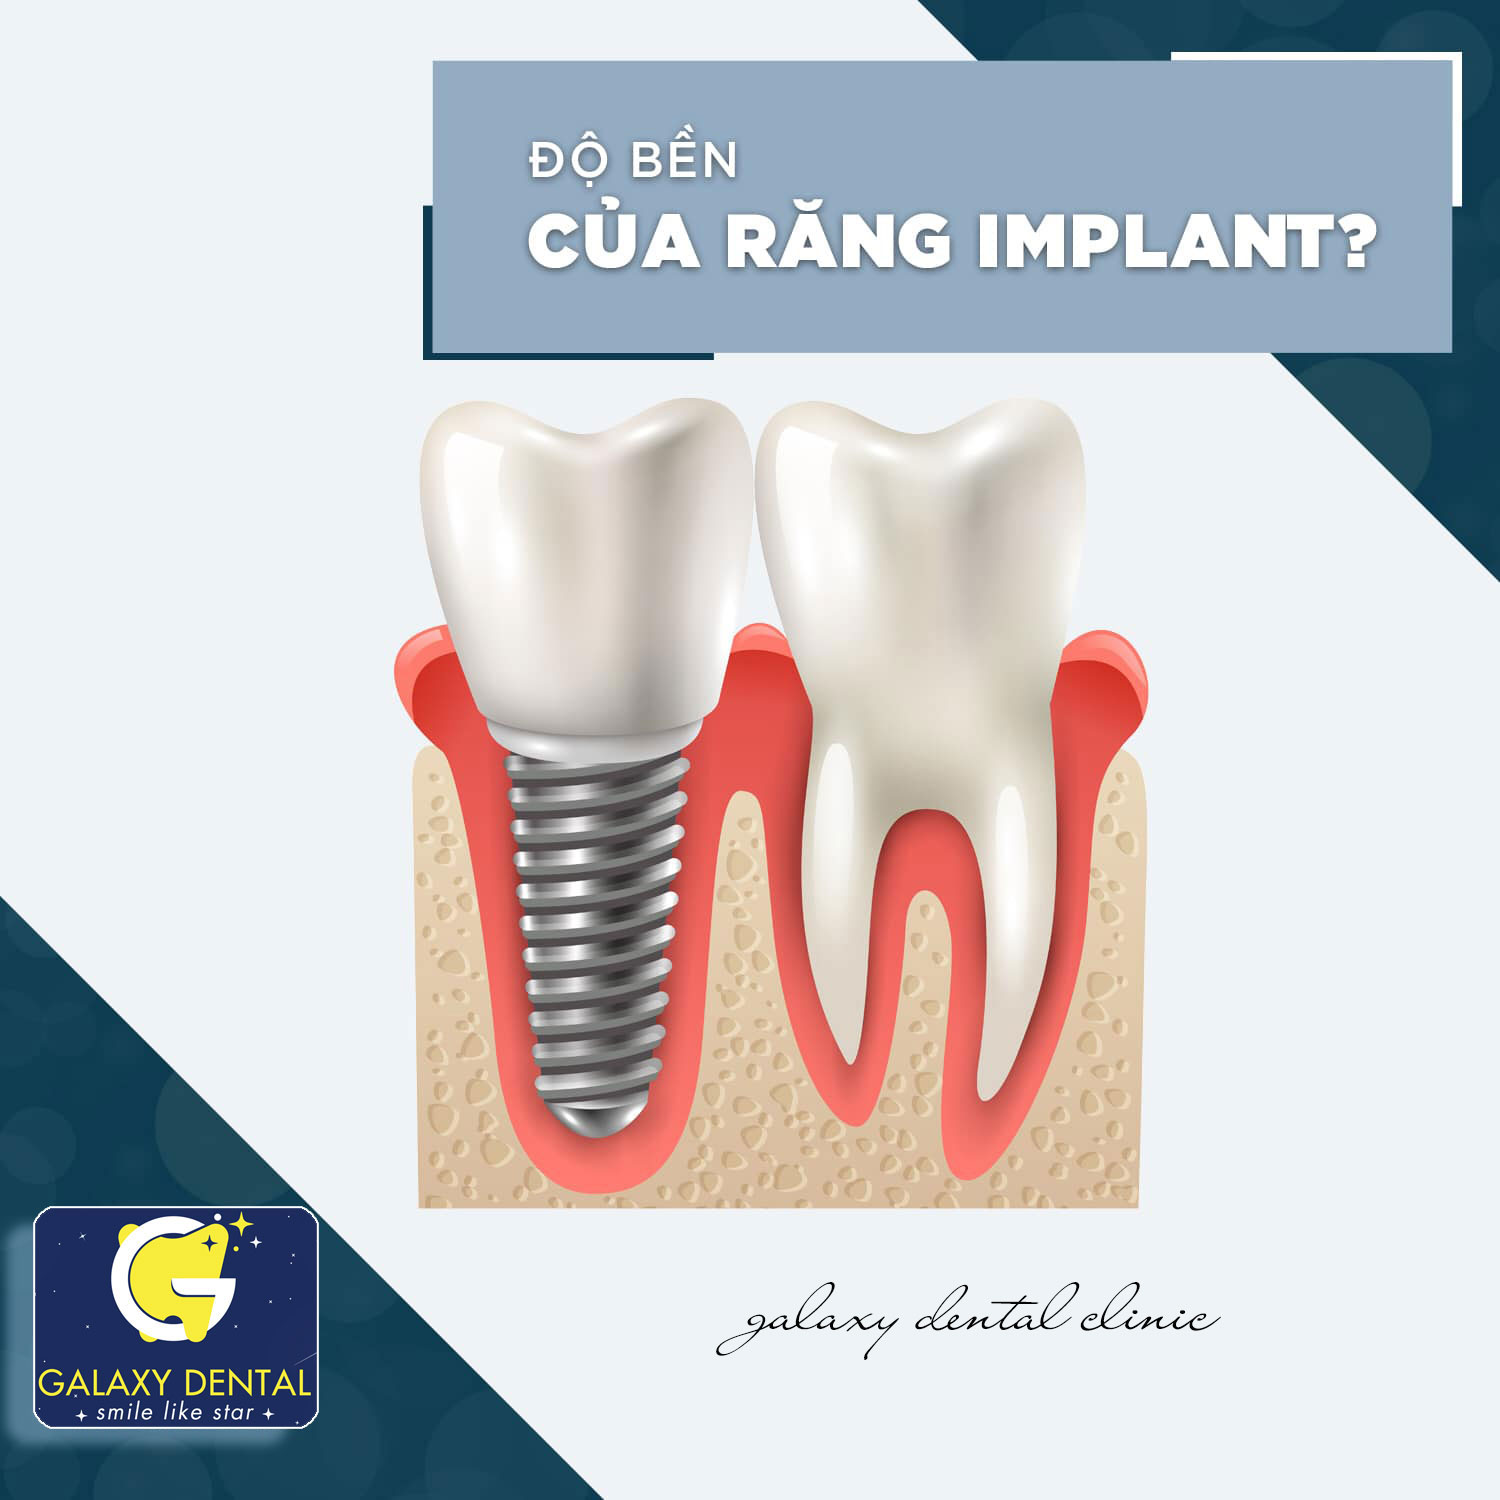 https://galaxydental.vn/img/galaxy-dental-do-ben-cua-implant.jpg